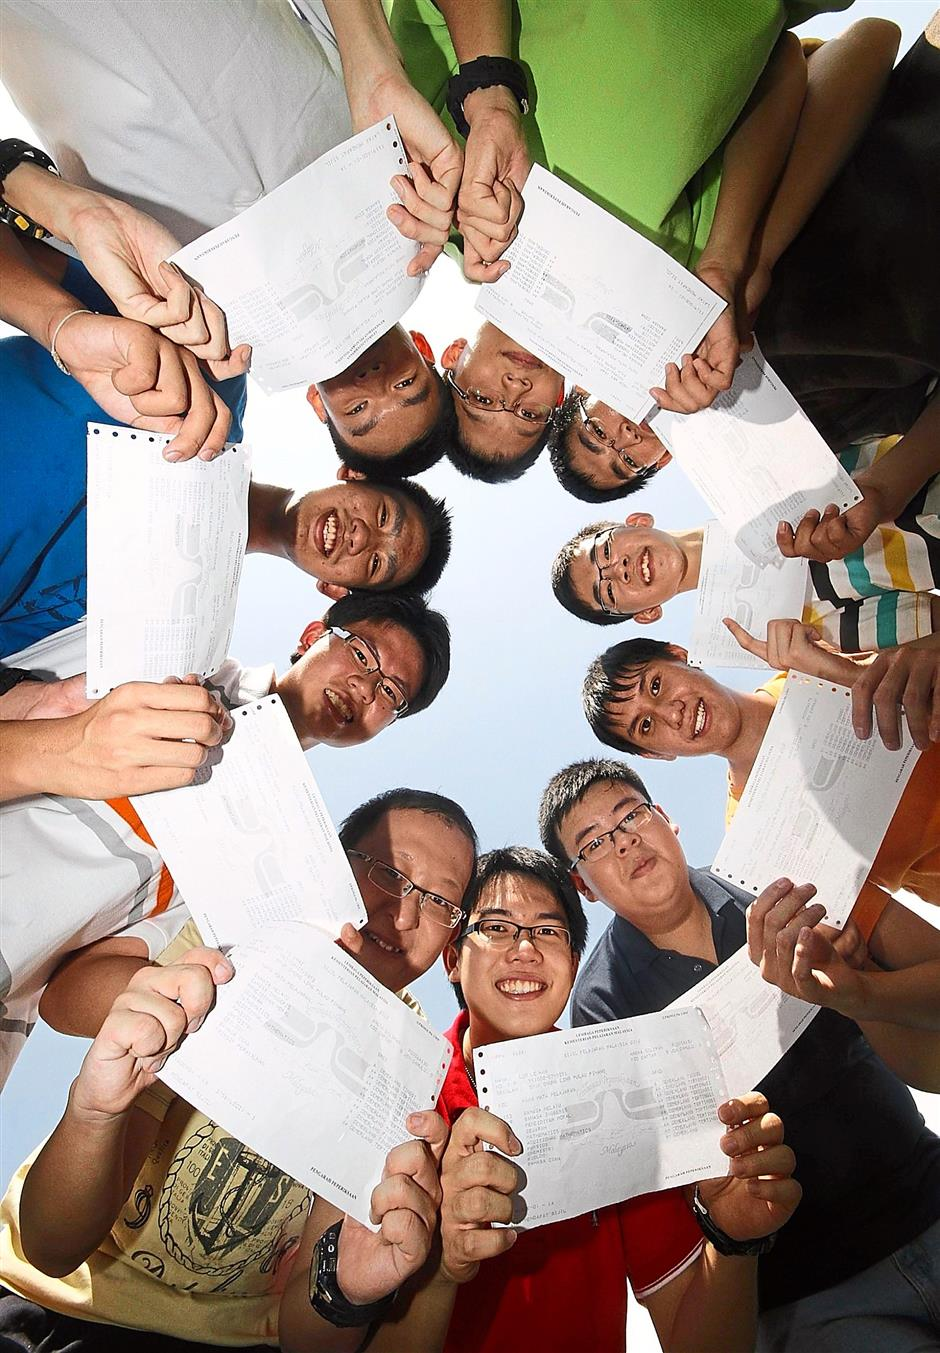 Elation: The results are out, and you've done all right. Now what? STPM? A-Levels? Ausmat? Diploma?